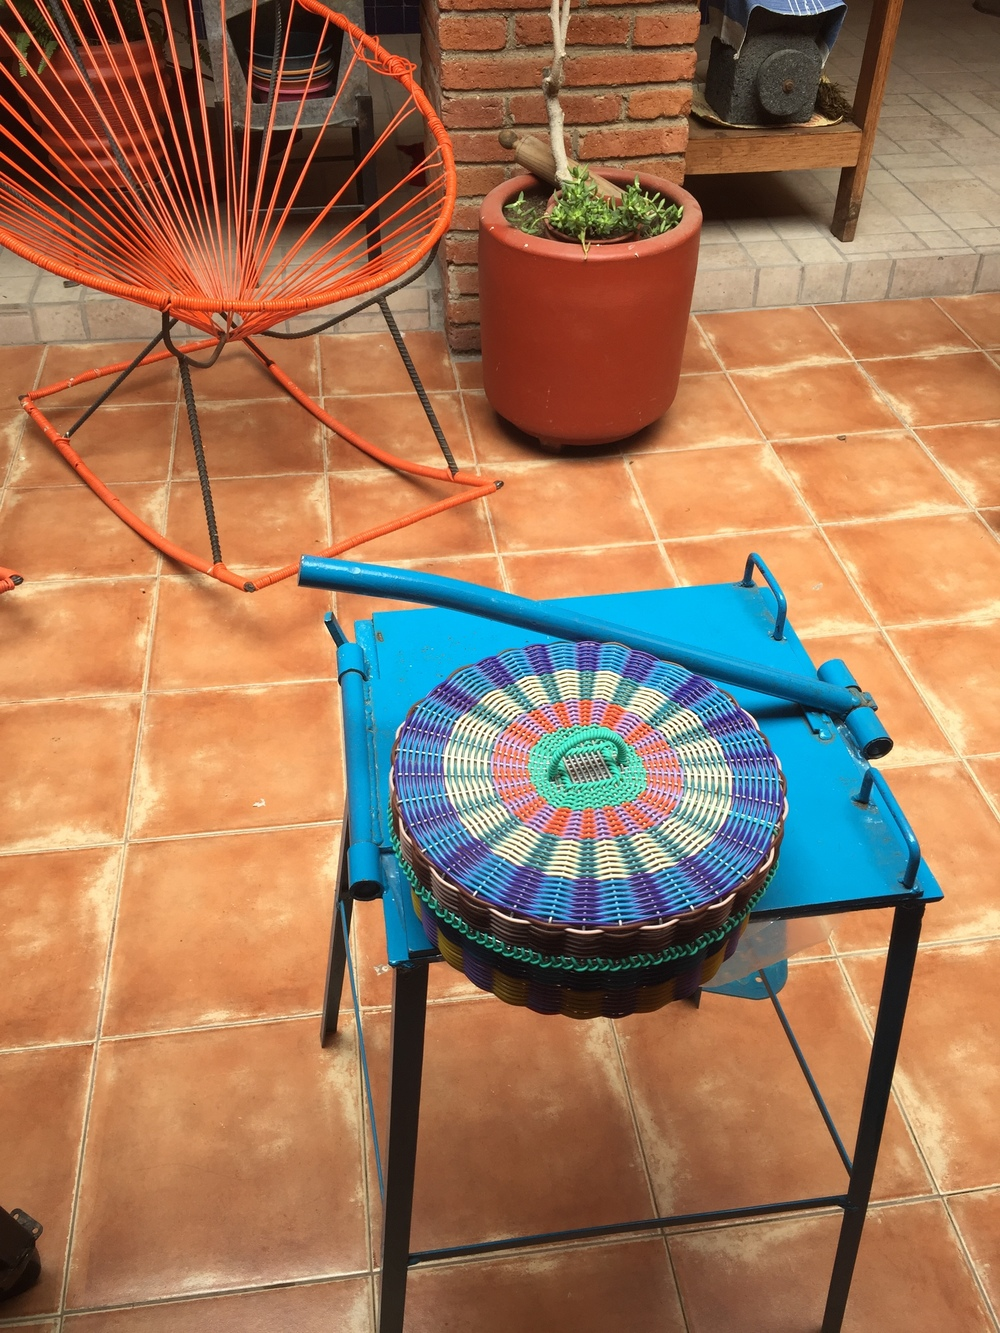 A traditional tortilla press and colorful woven basket for keeping them warm.